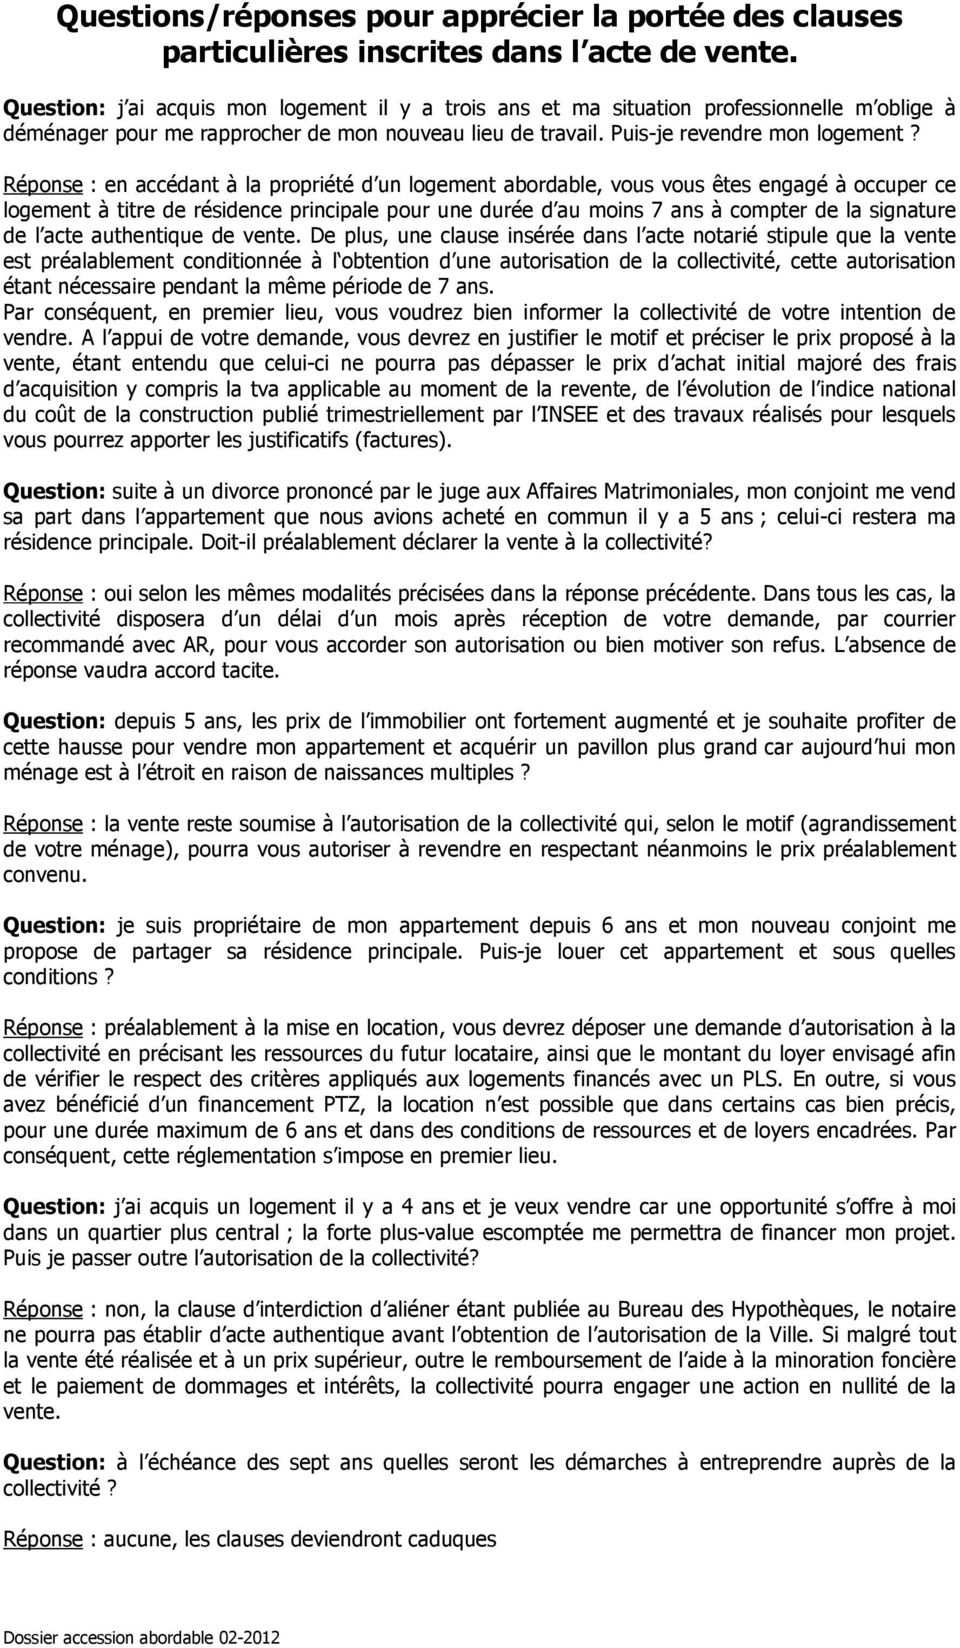 Conditions D Eligibilite Pour L Accession A La Propriete D Un